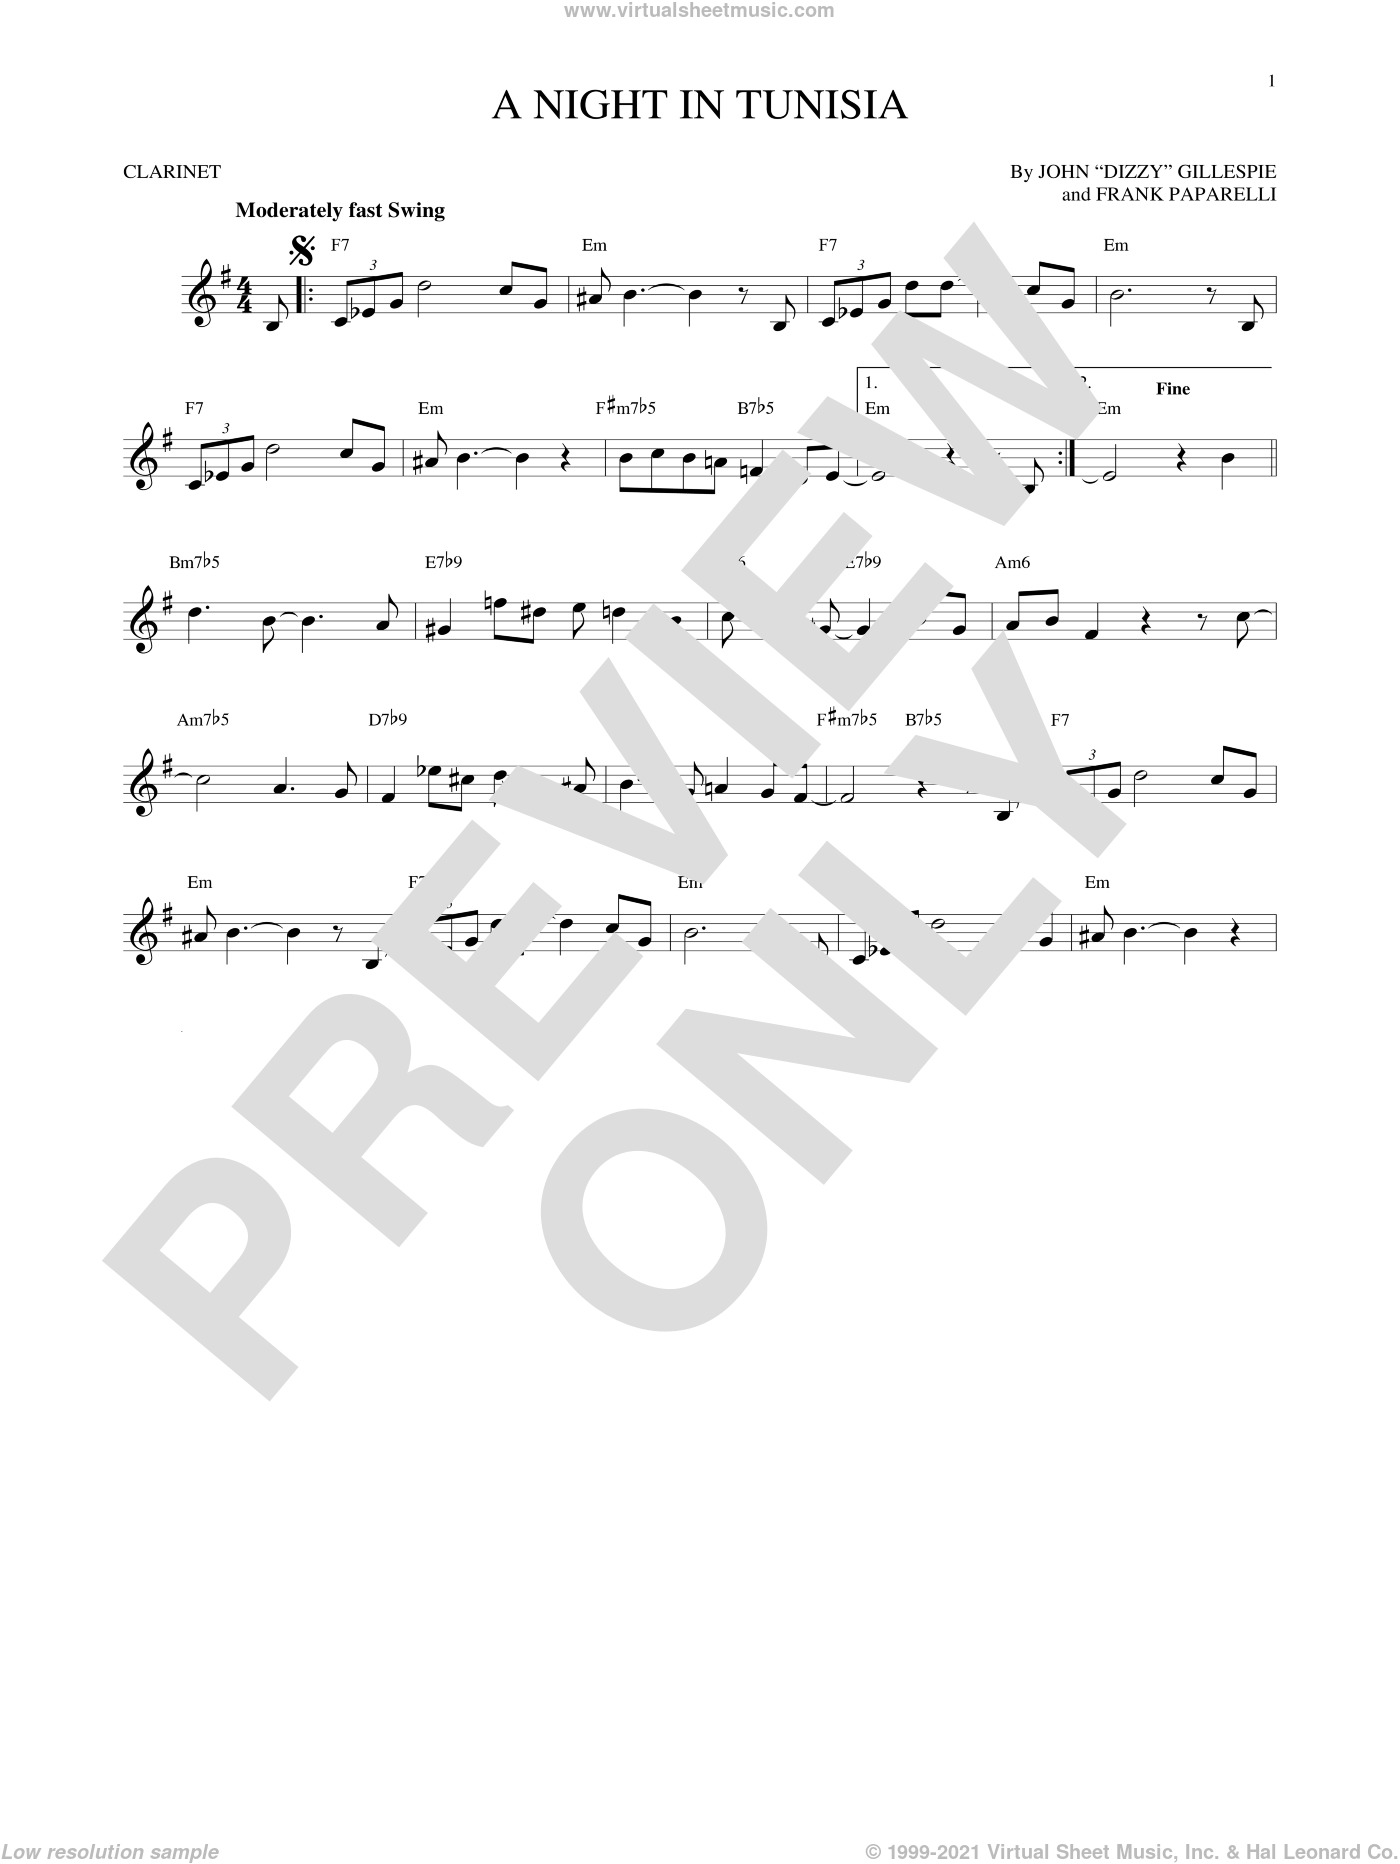 A Night In Tunisia sheet music for clarinet solo by Dizzy Gillespie and Frank Paparelli, intermediate skill level